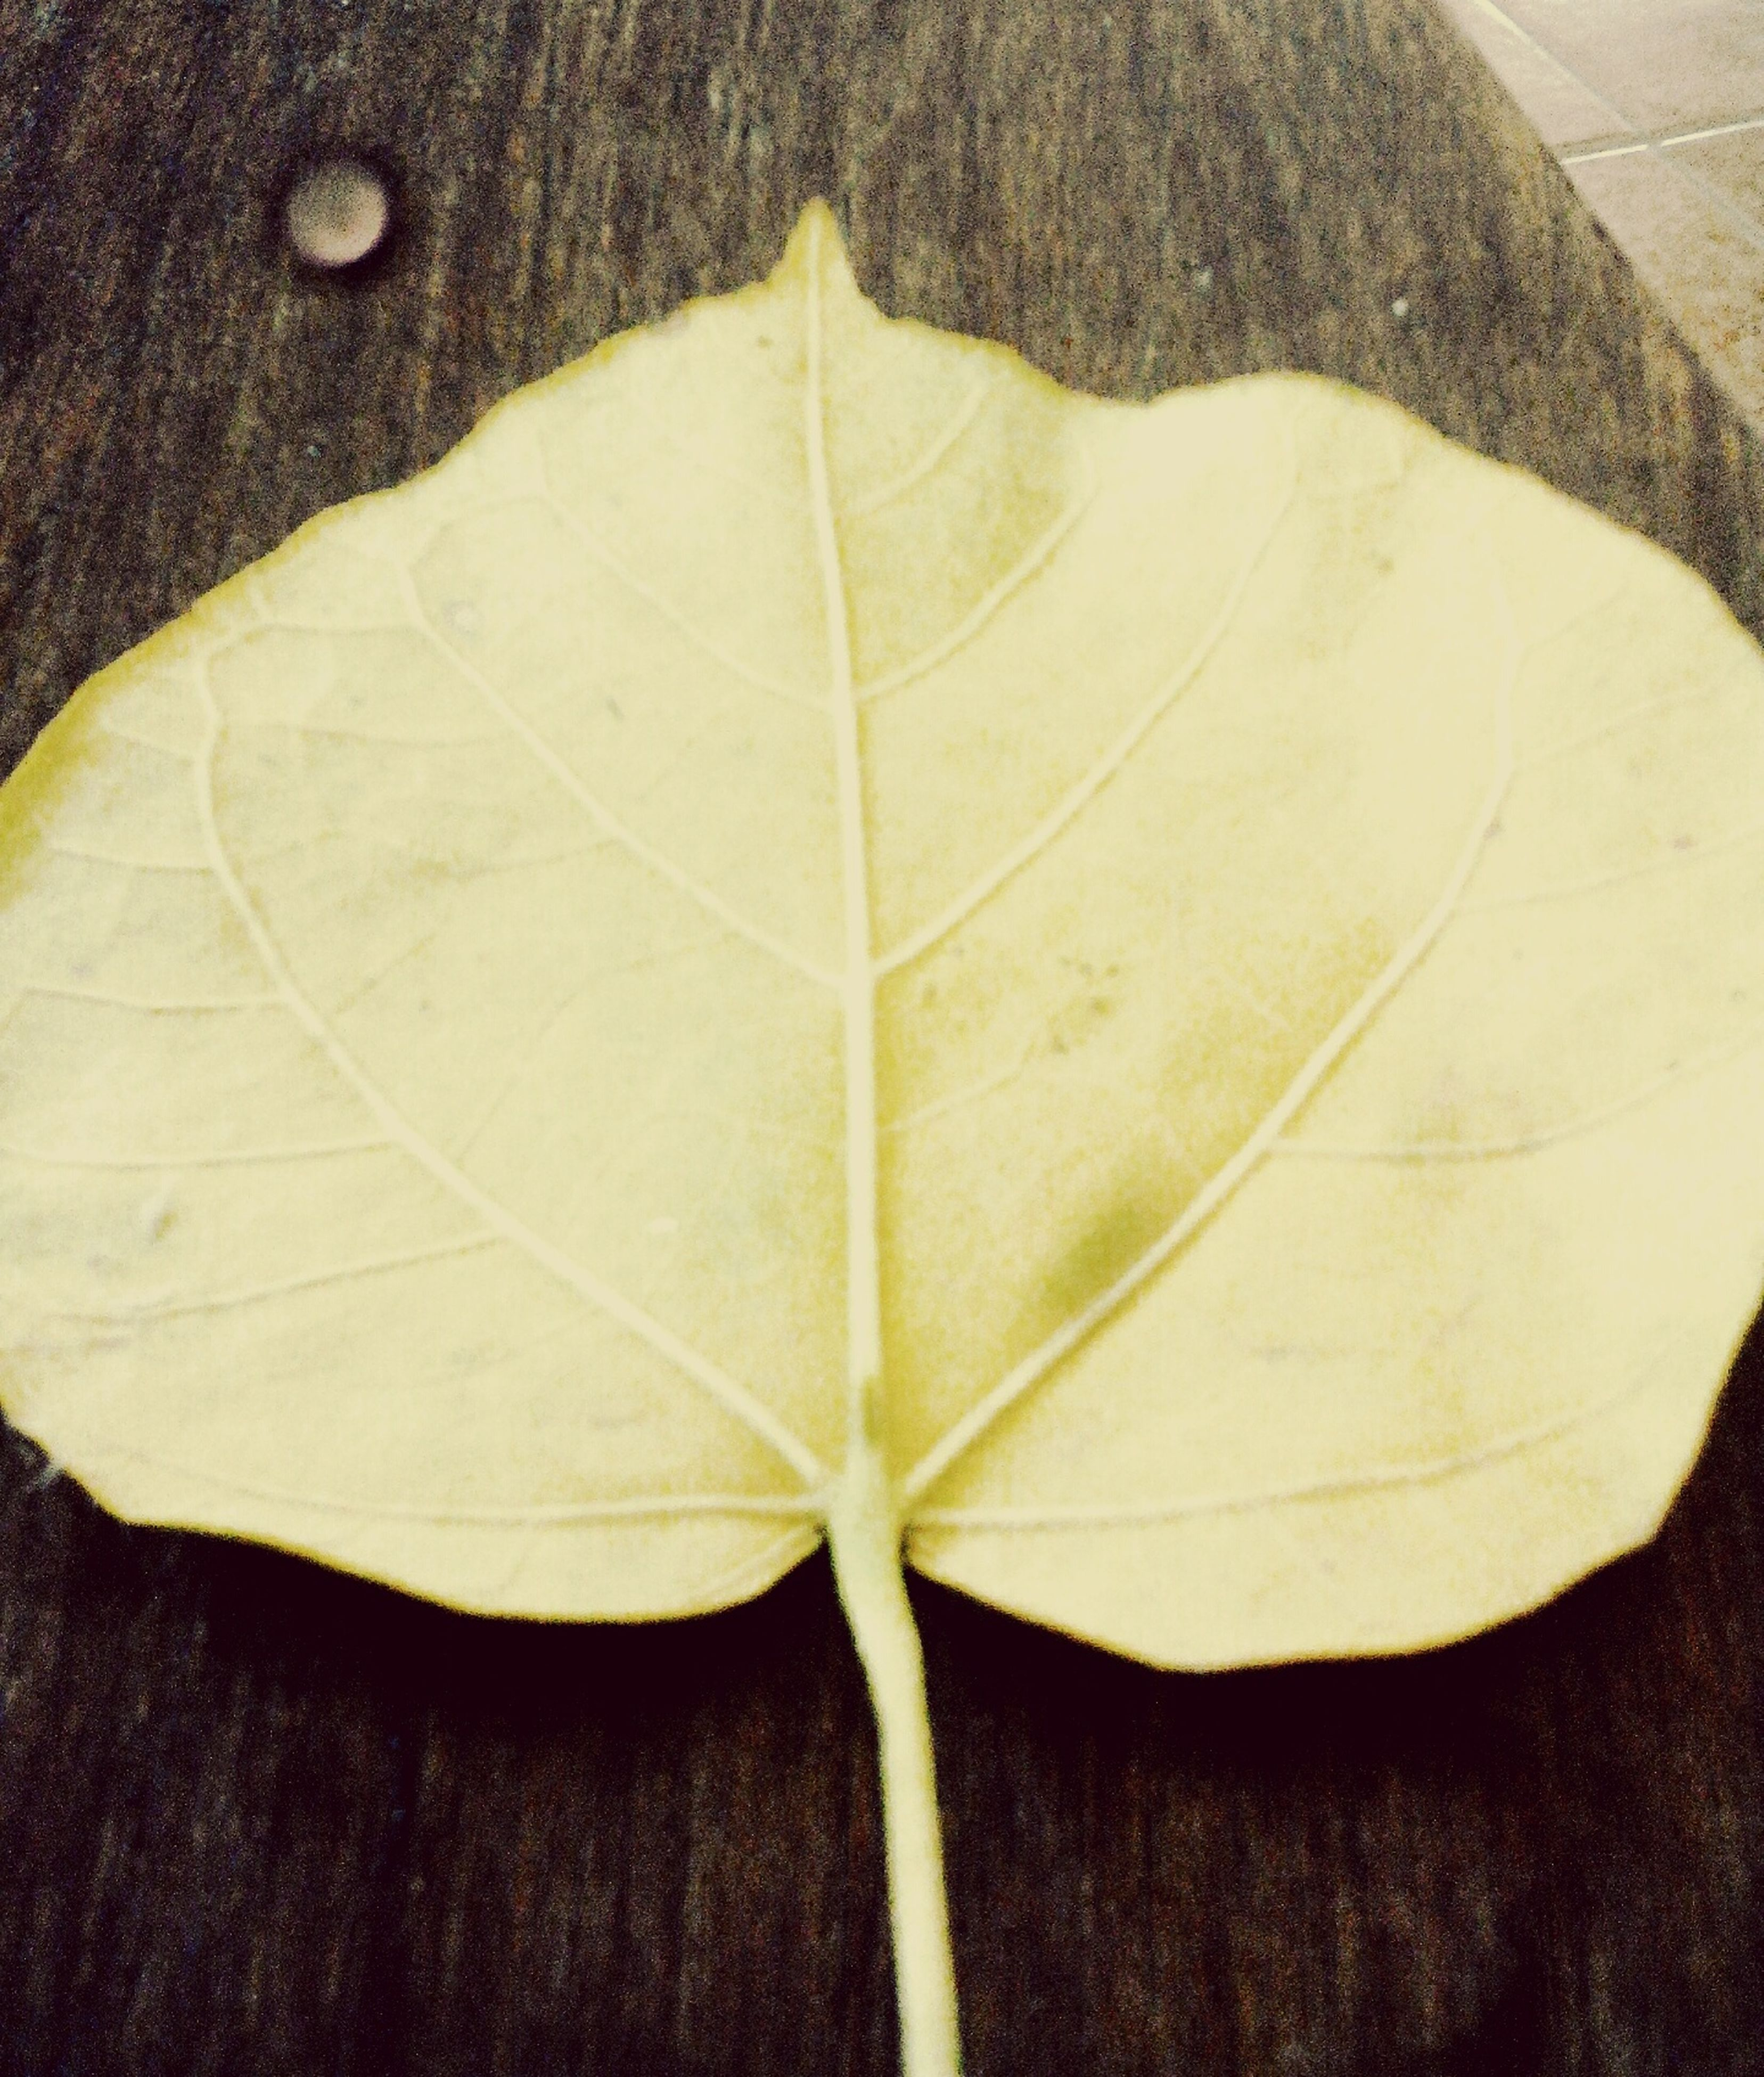 leaf, dry, season, close-up, leaf vein, yellow, nature, fragility, beauty in nature, tranquility, no people